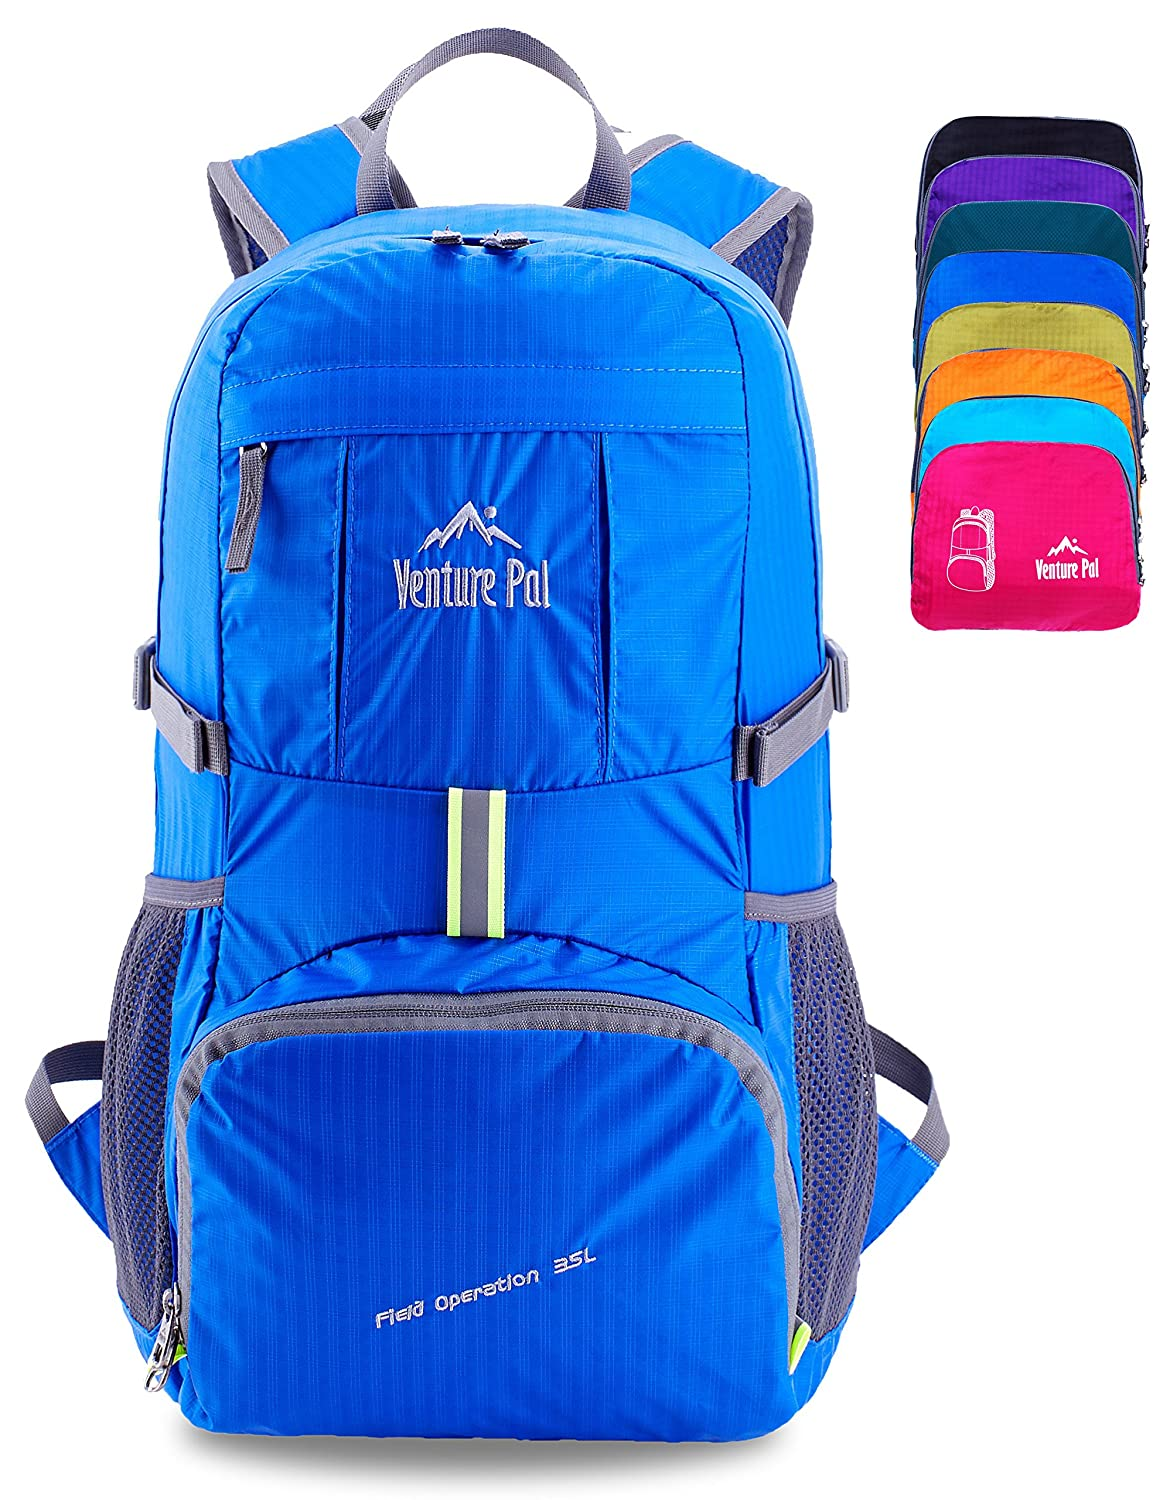 Venture Pal Lightweight Packable Durable Travel Hiking Backpack Black Friday Deals